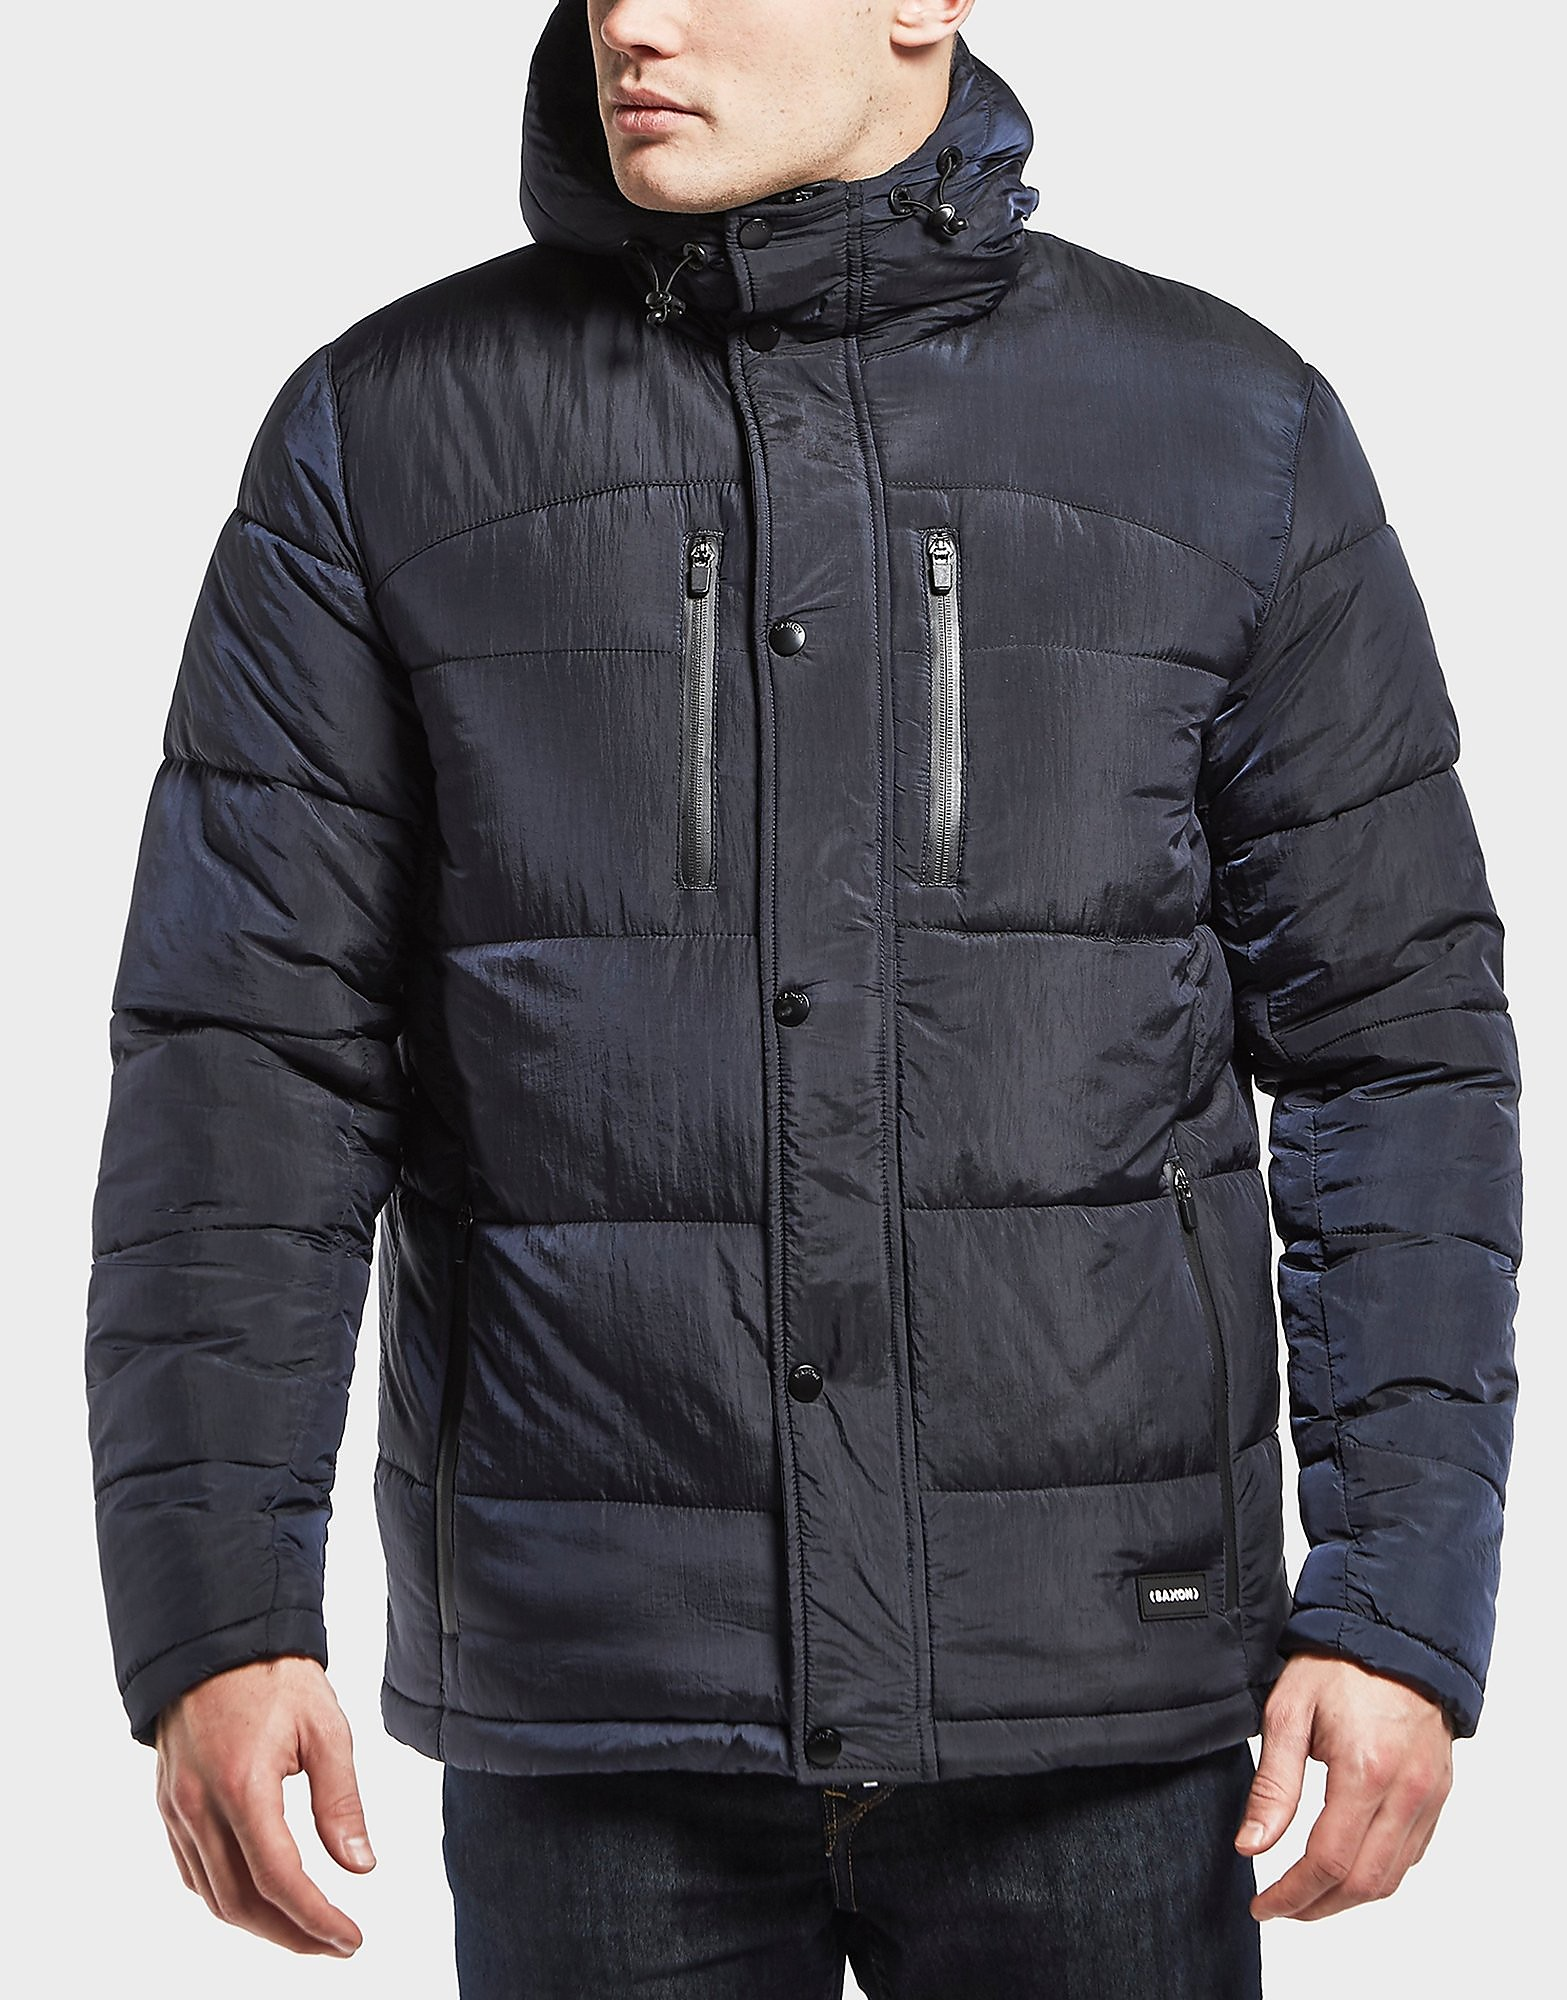 One True Saxon Granted Padded Jacket - Exclusive